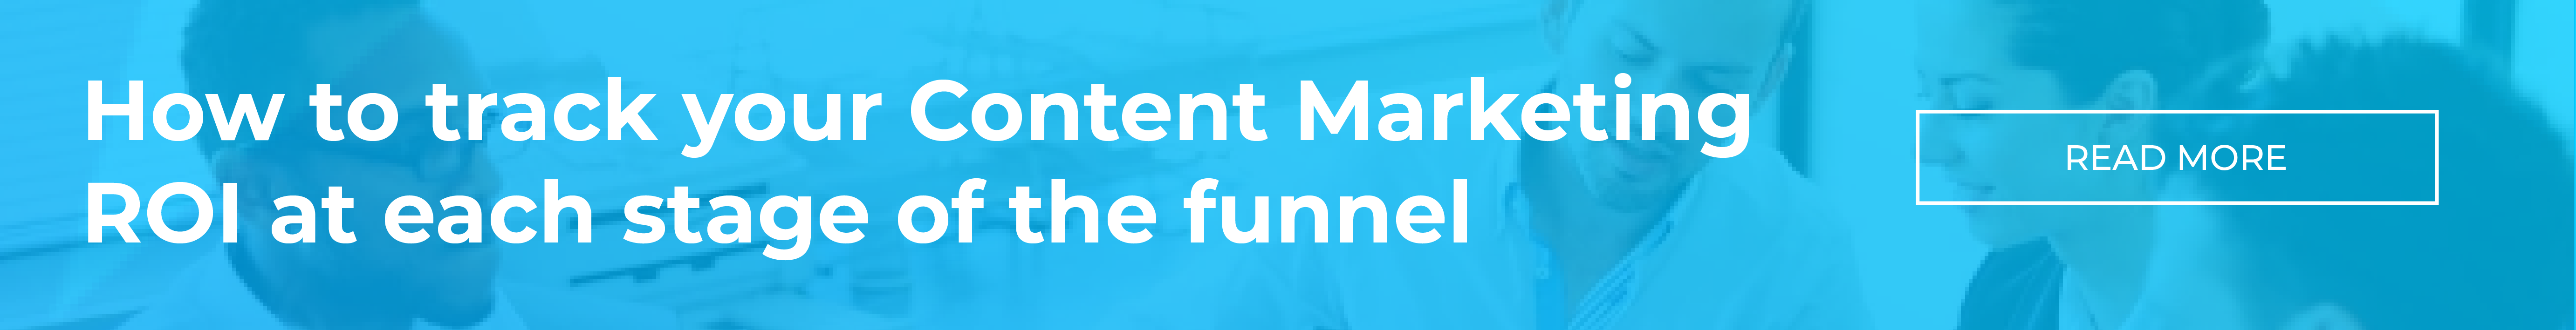 How to track your Content Marketing ROI at each stage of the funnel